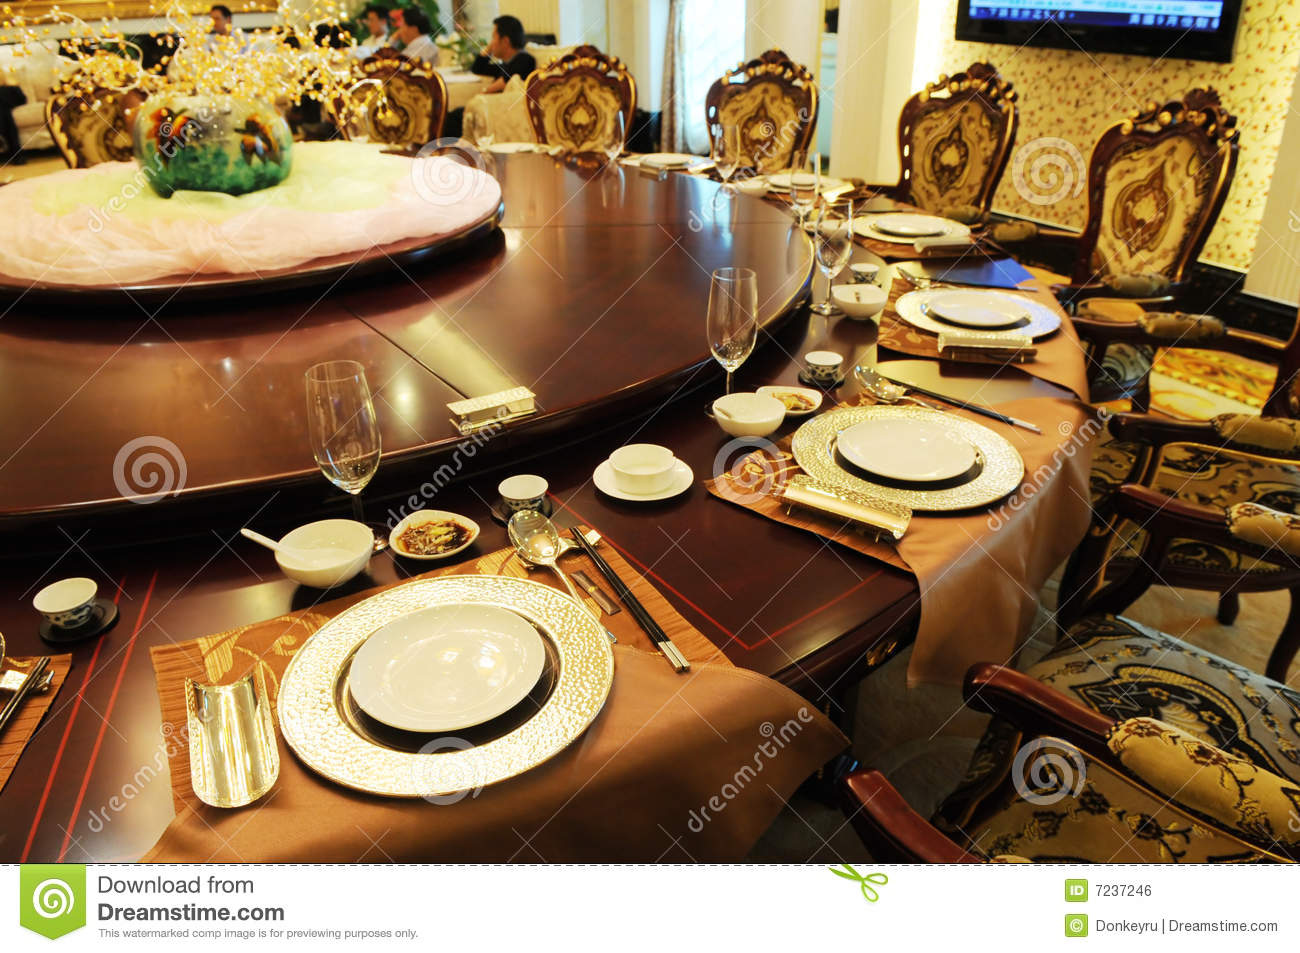 The Luxury Formal Dinner Setting Stock Photo Image 7237246